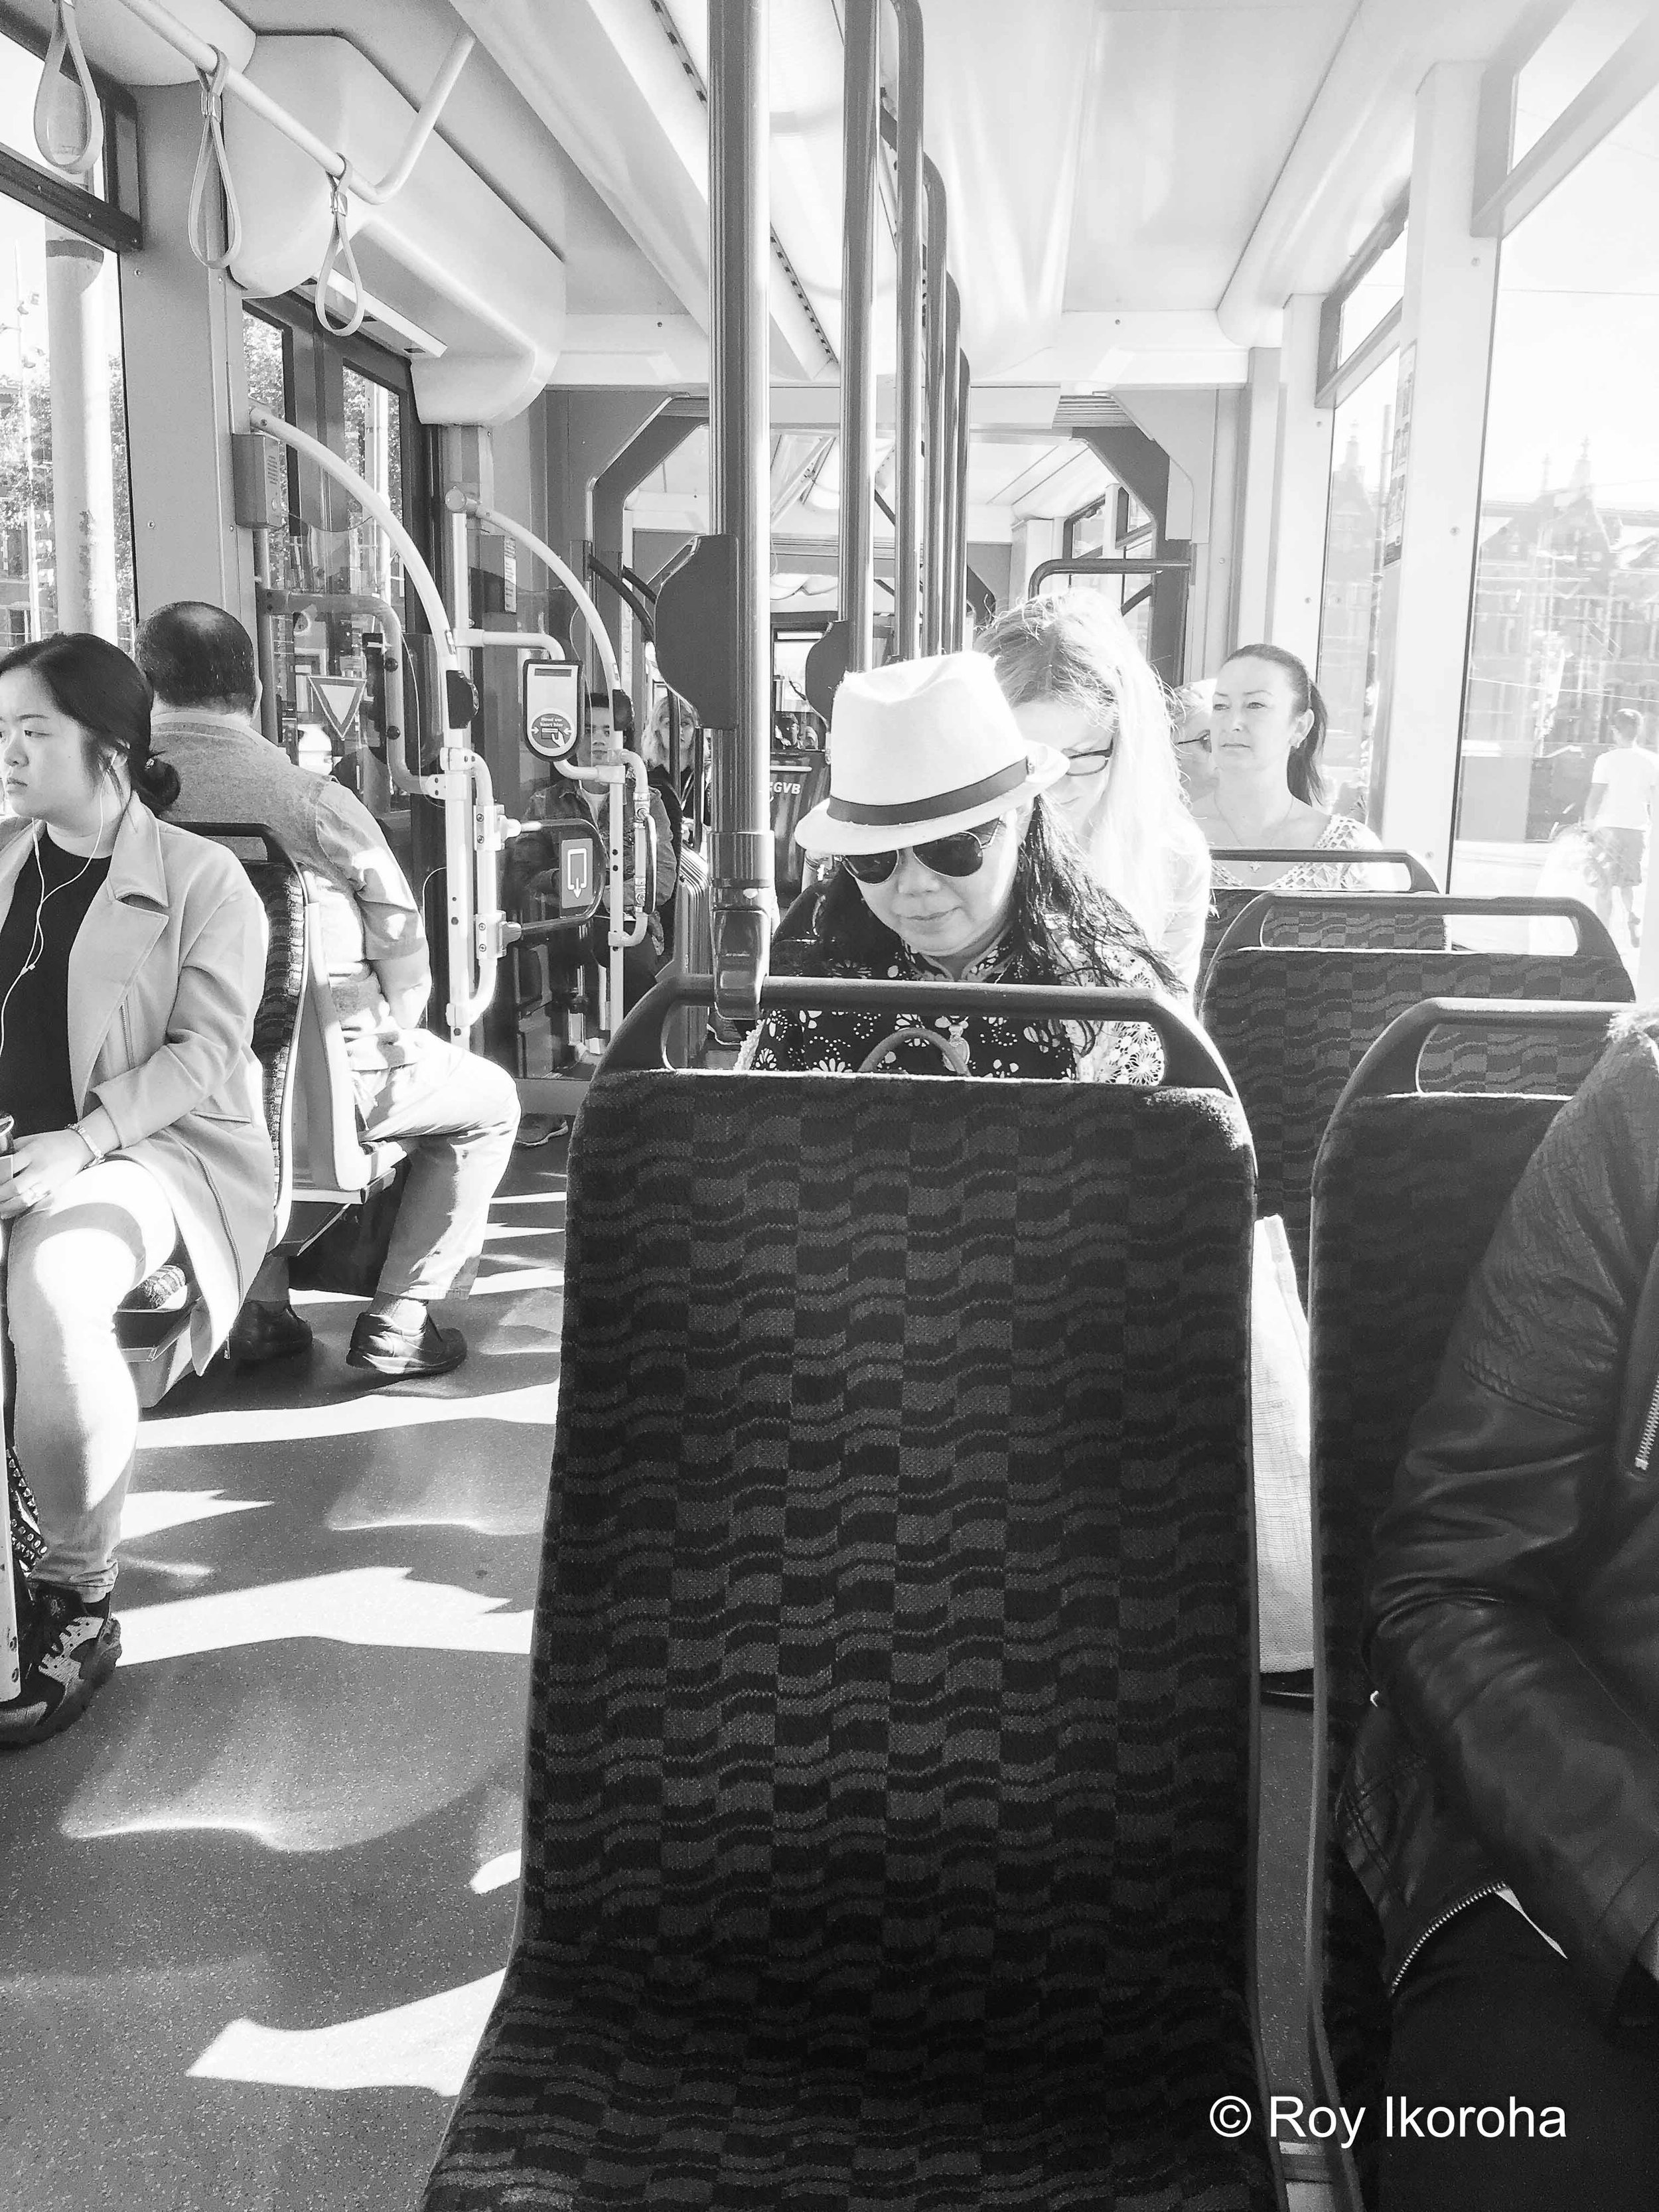 Lady going about her travels via tram, Amsterdam, Netherlands